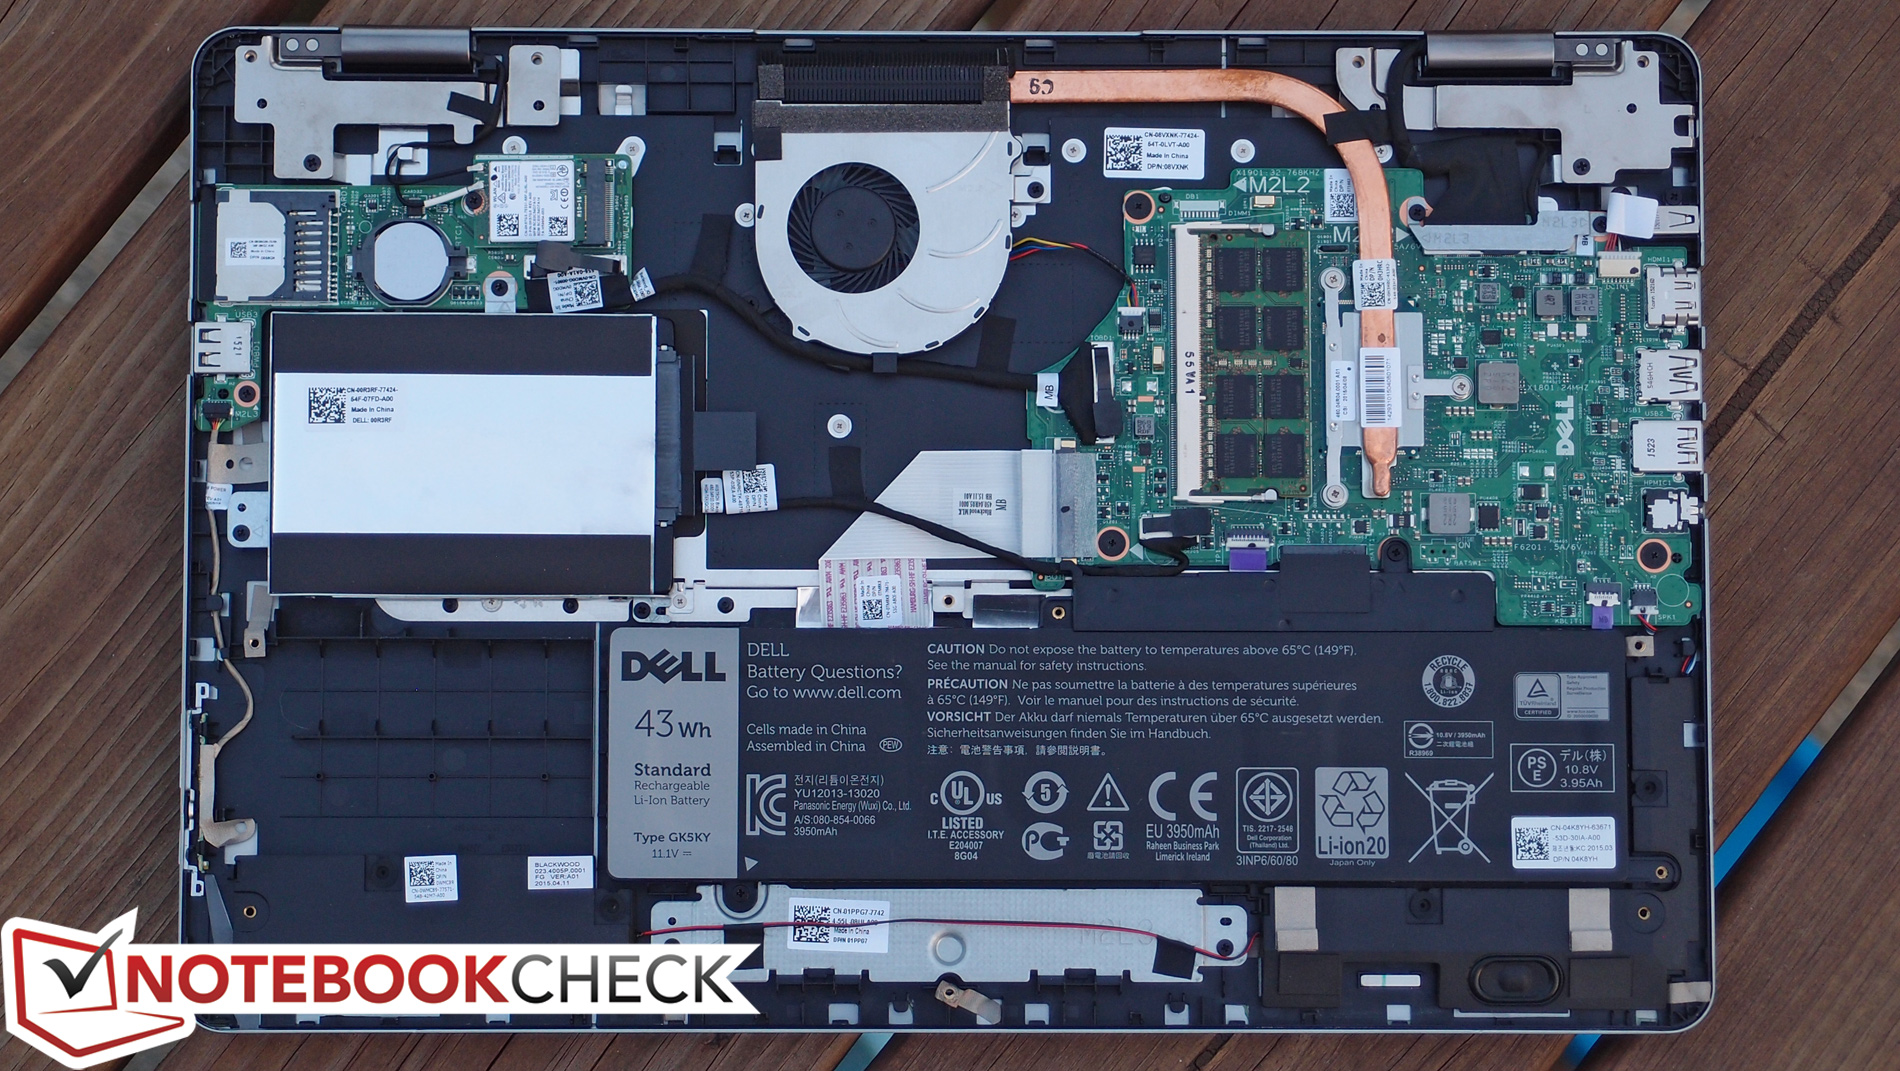 Hp Elitebook 2540p Schematic Swatch Uma La 5251p as well Face Off Lenovo Yoga 500 Vs Dell Inspiron 15 7000 2 In 1 Vs Toshiba Satellite Radius 15 147323 0 together with ment 17826 furthermore Watch furthermore MLM 550178841 Diagrama Para Laptop Schematic Tarjeta Madre Motherboard  JM. on hp laptop motherboard diagram